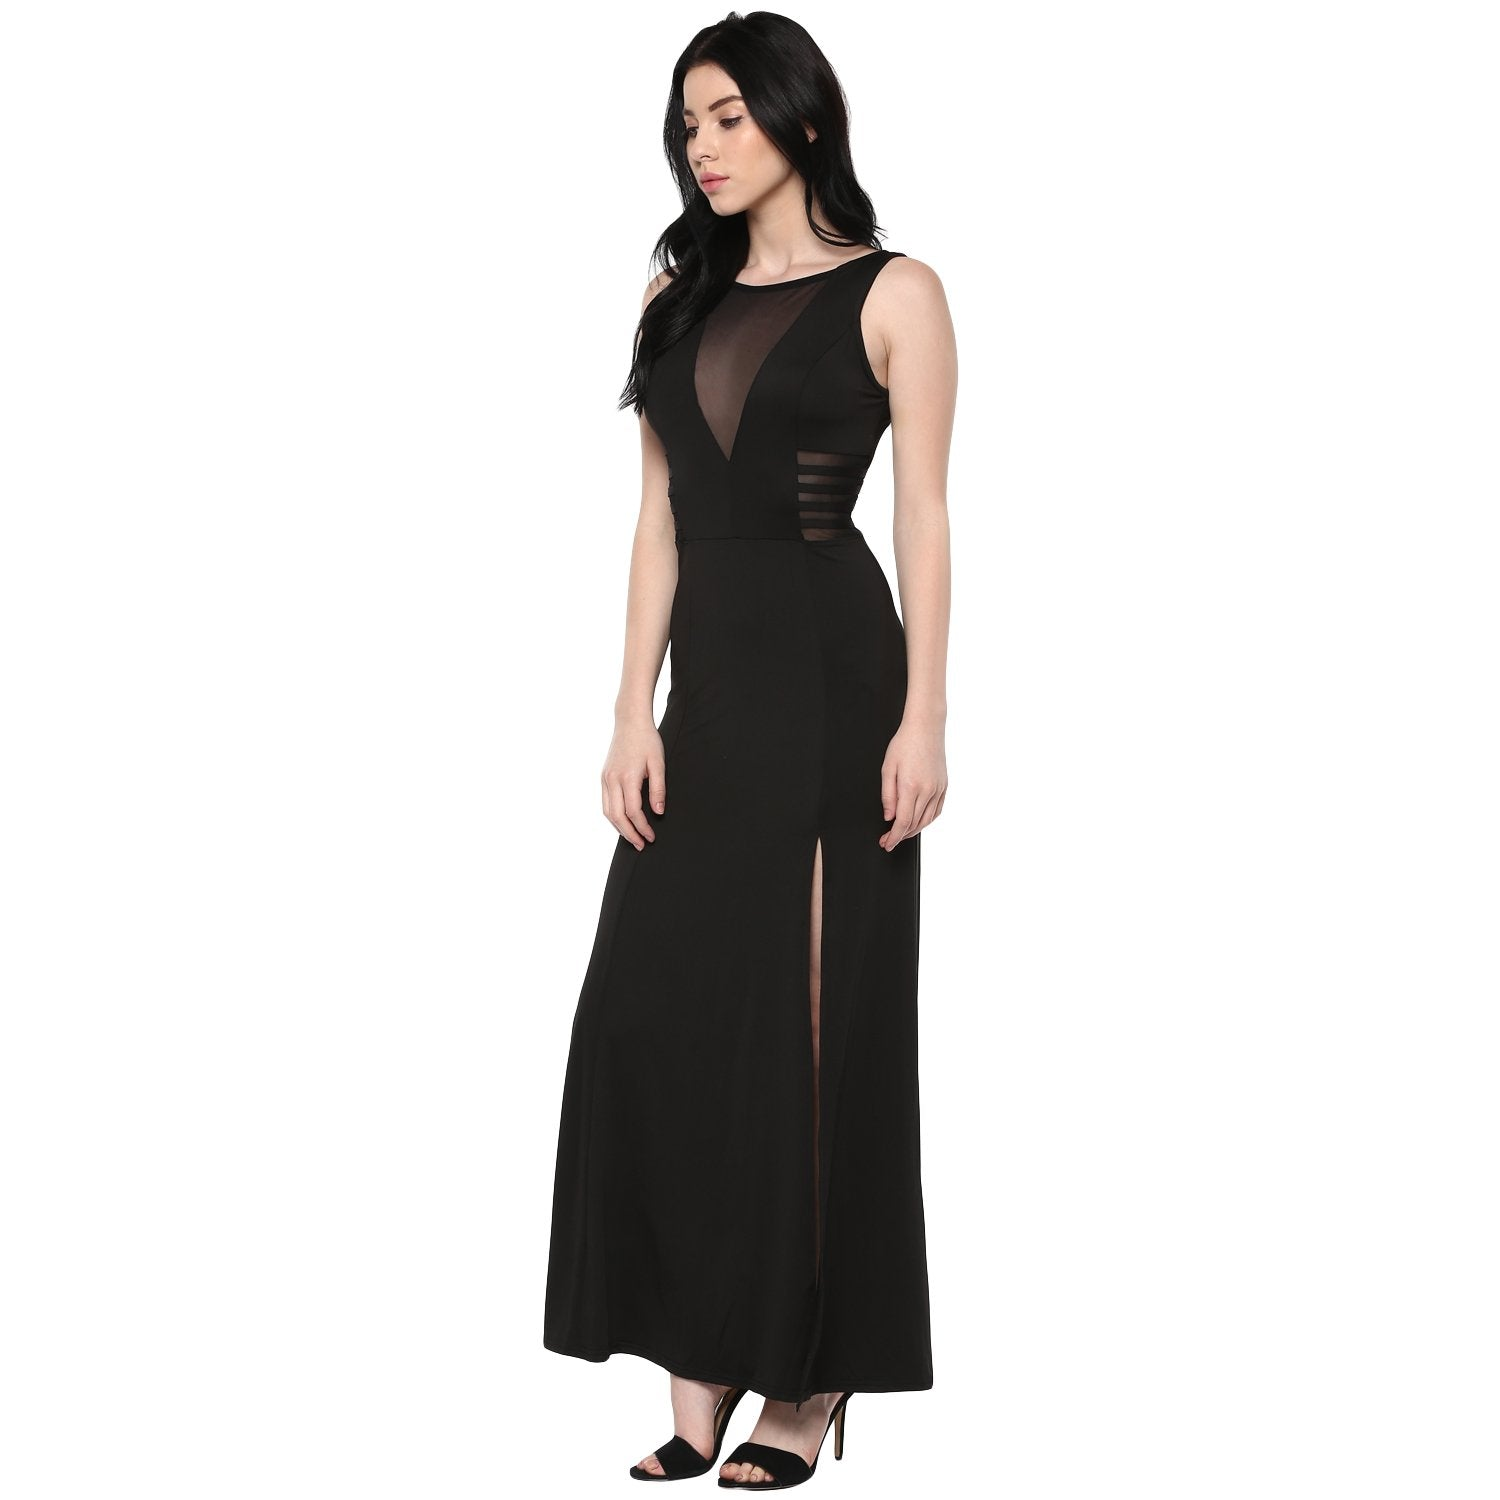 Jaune Transparent Band with Slit Sheer Sheath Gown